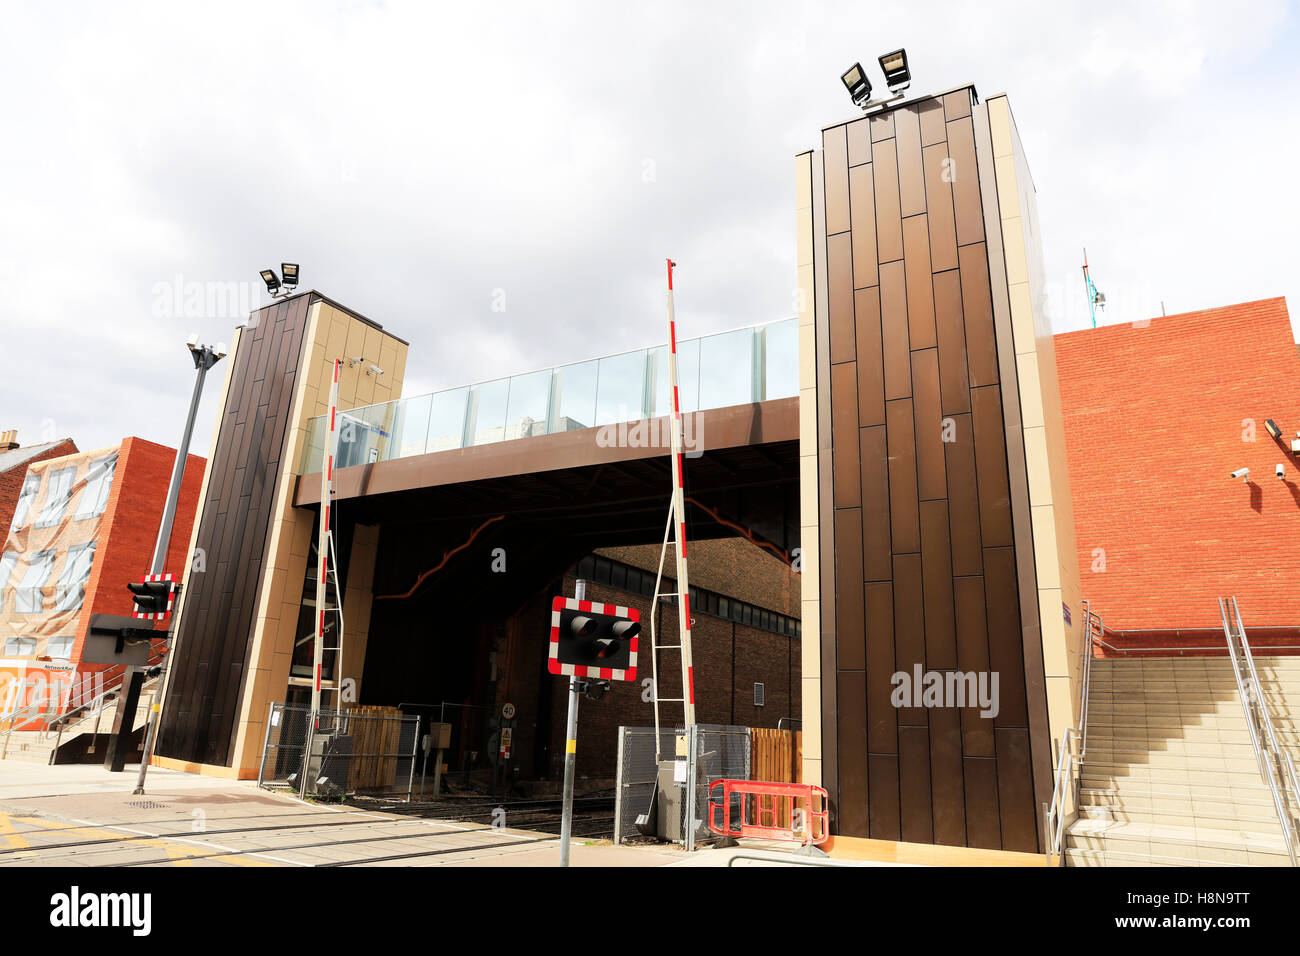 Lincoln city new footbridge over rail line level crossing bridge Lincolnshire access over railway line UK England - Stock Image